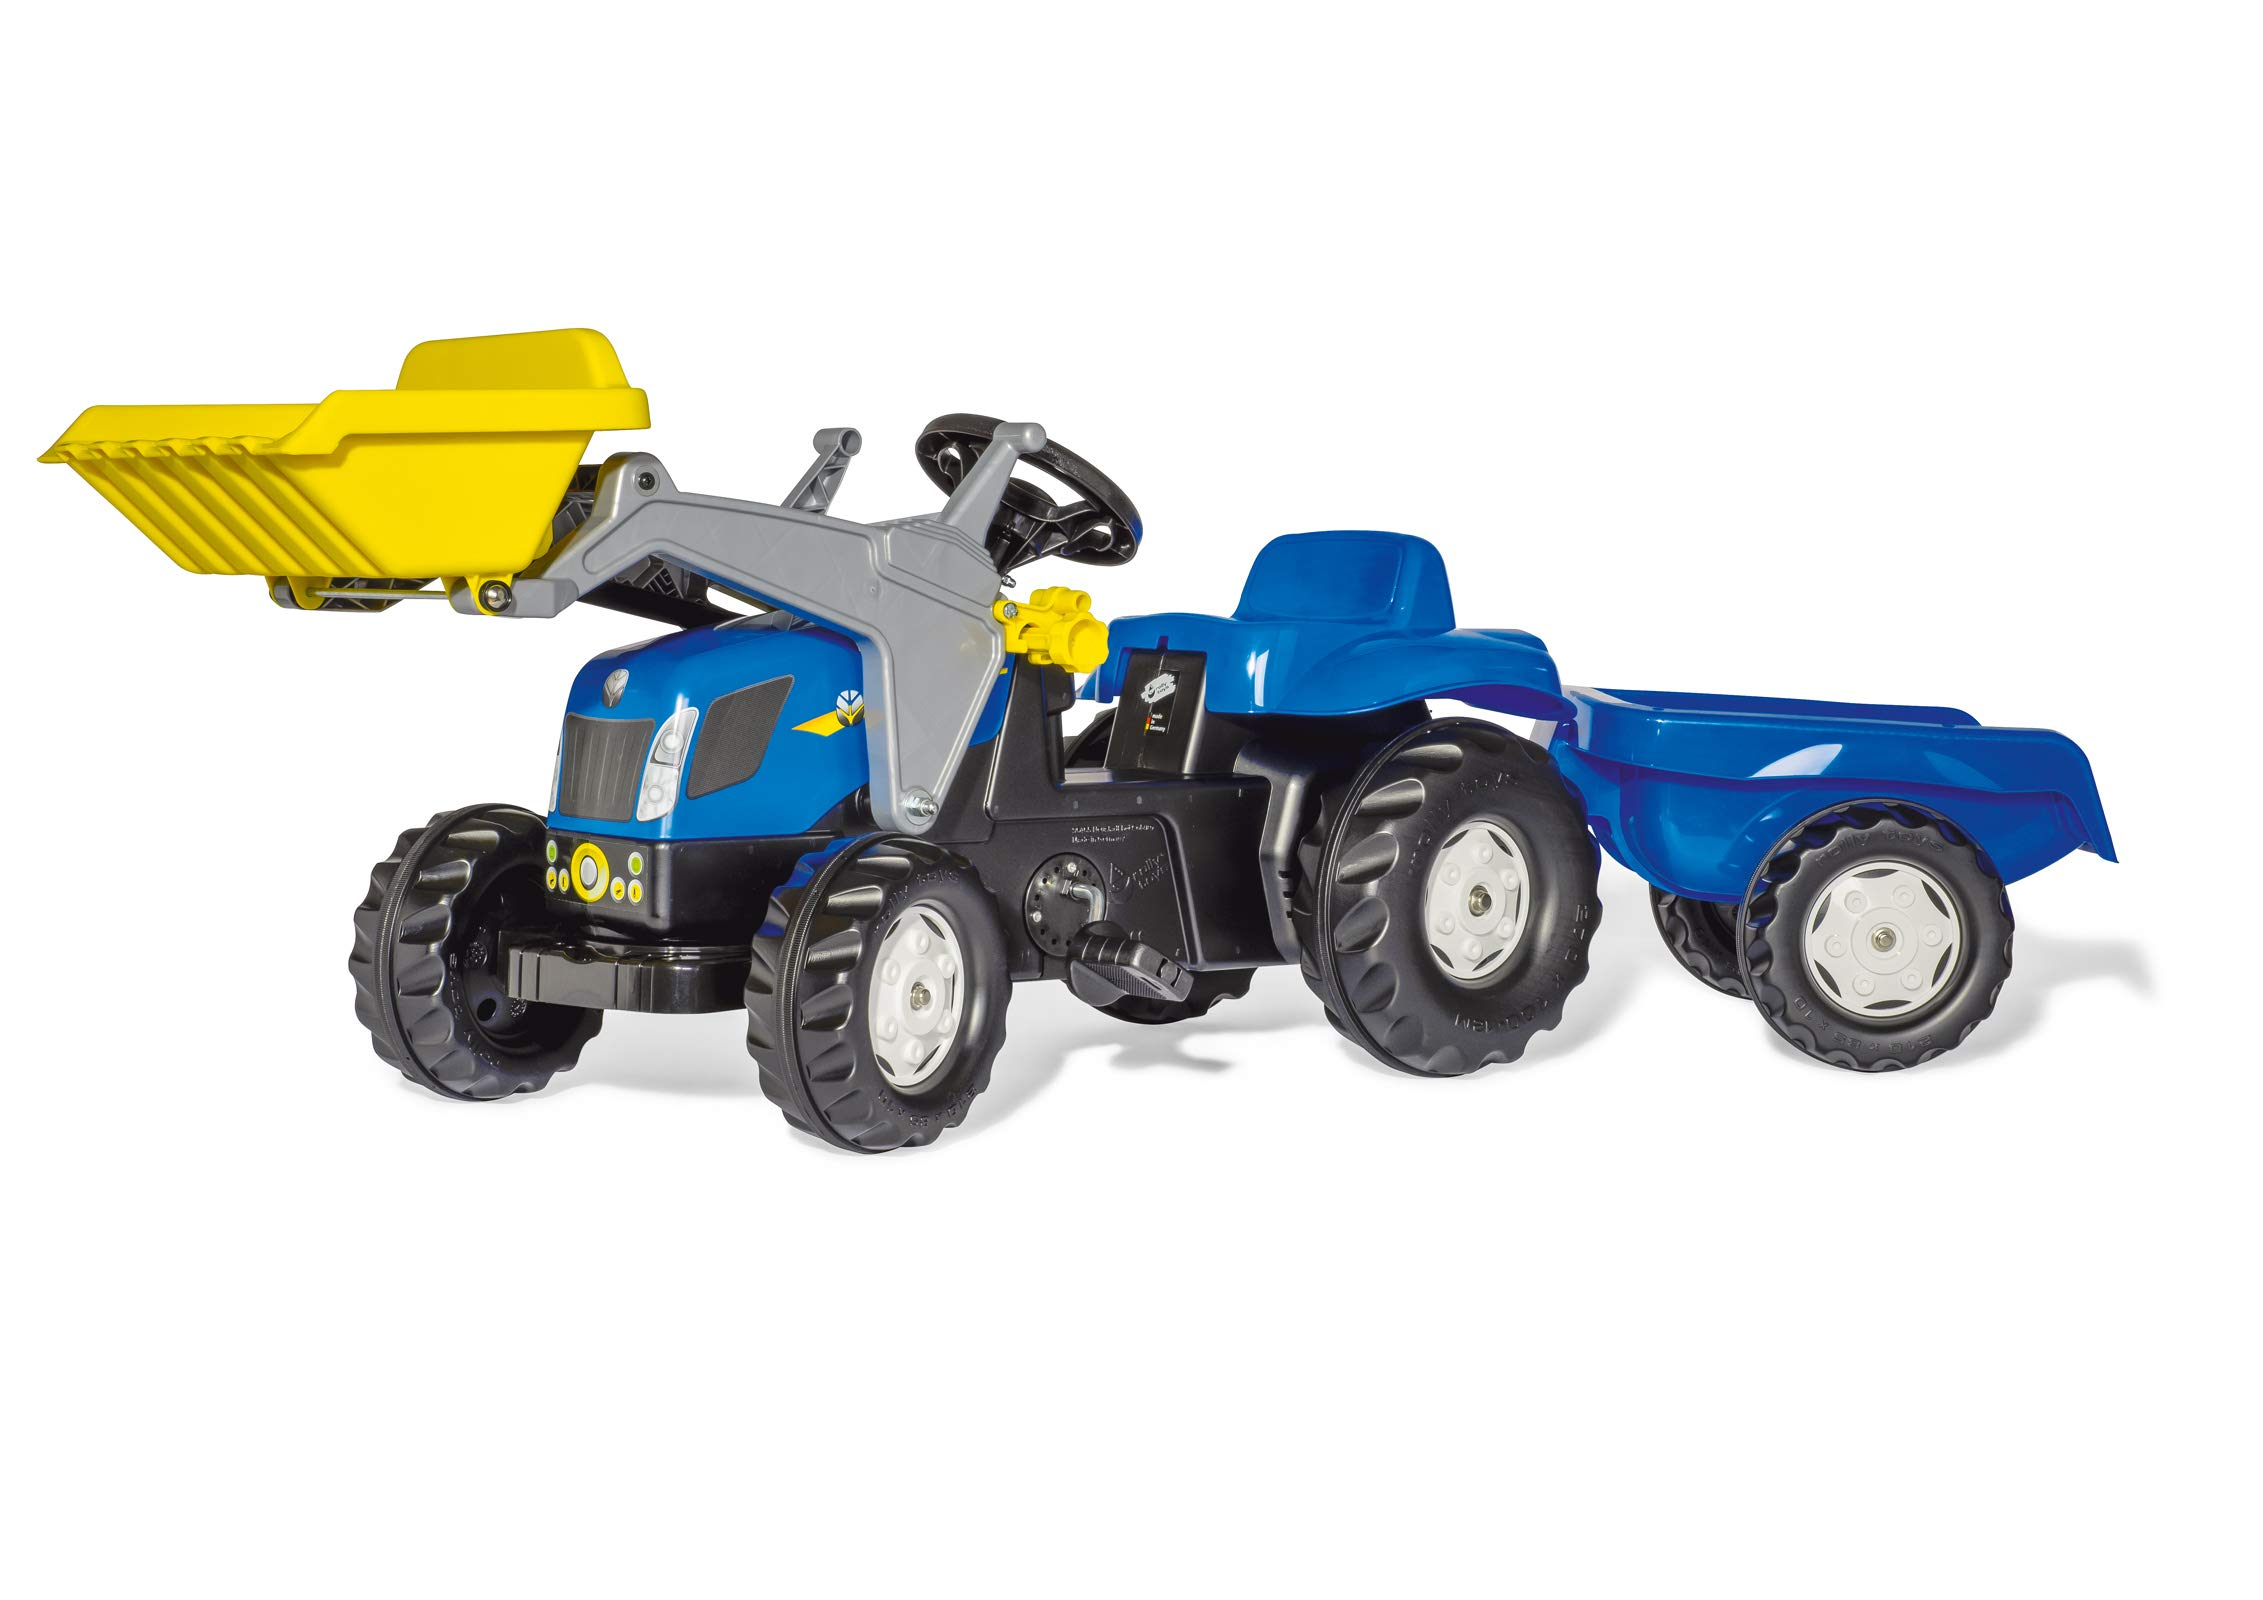 Rolly Toys New Holland Kid-X Front Loader Tractor, Blue by rolly toys (Image #2)